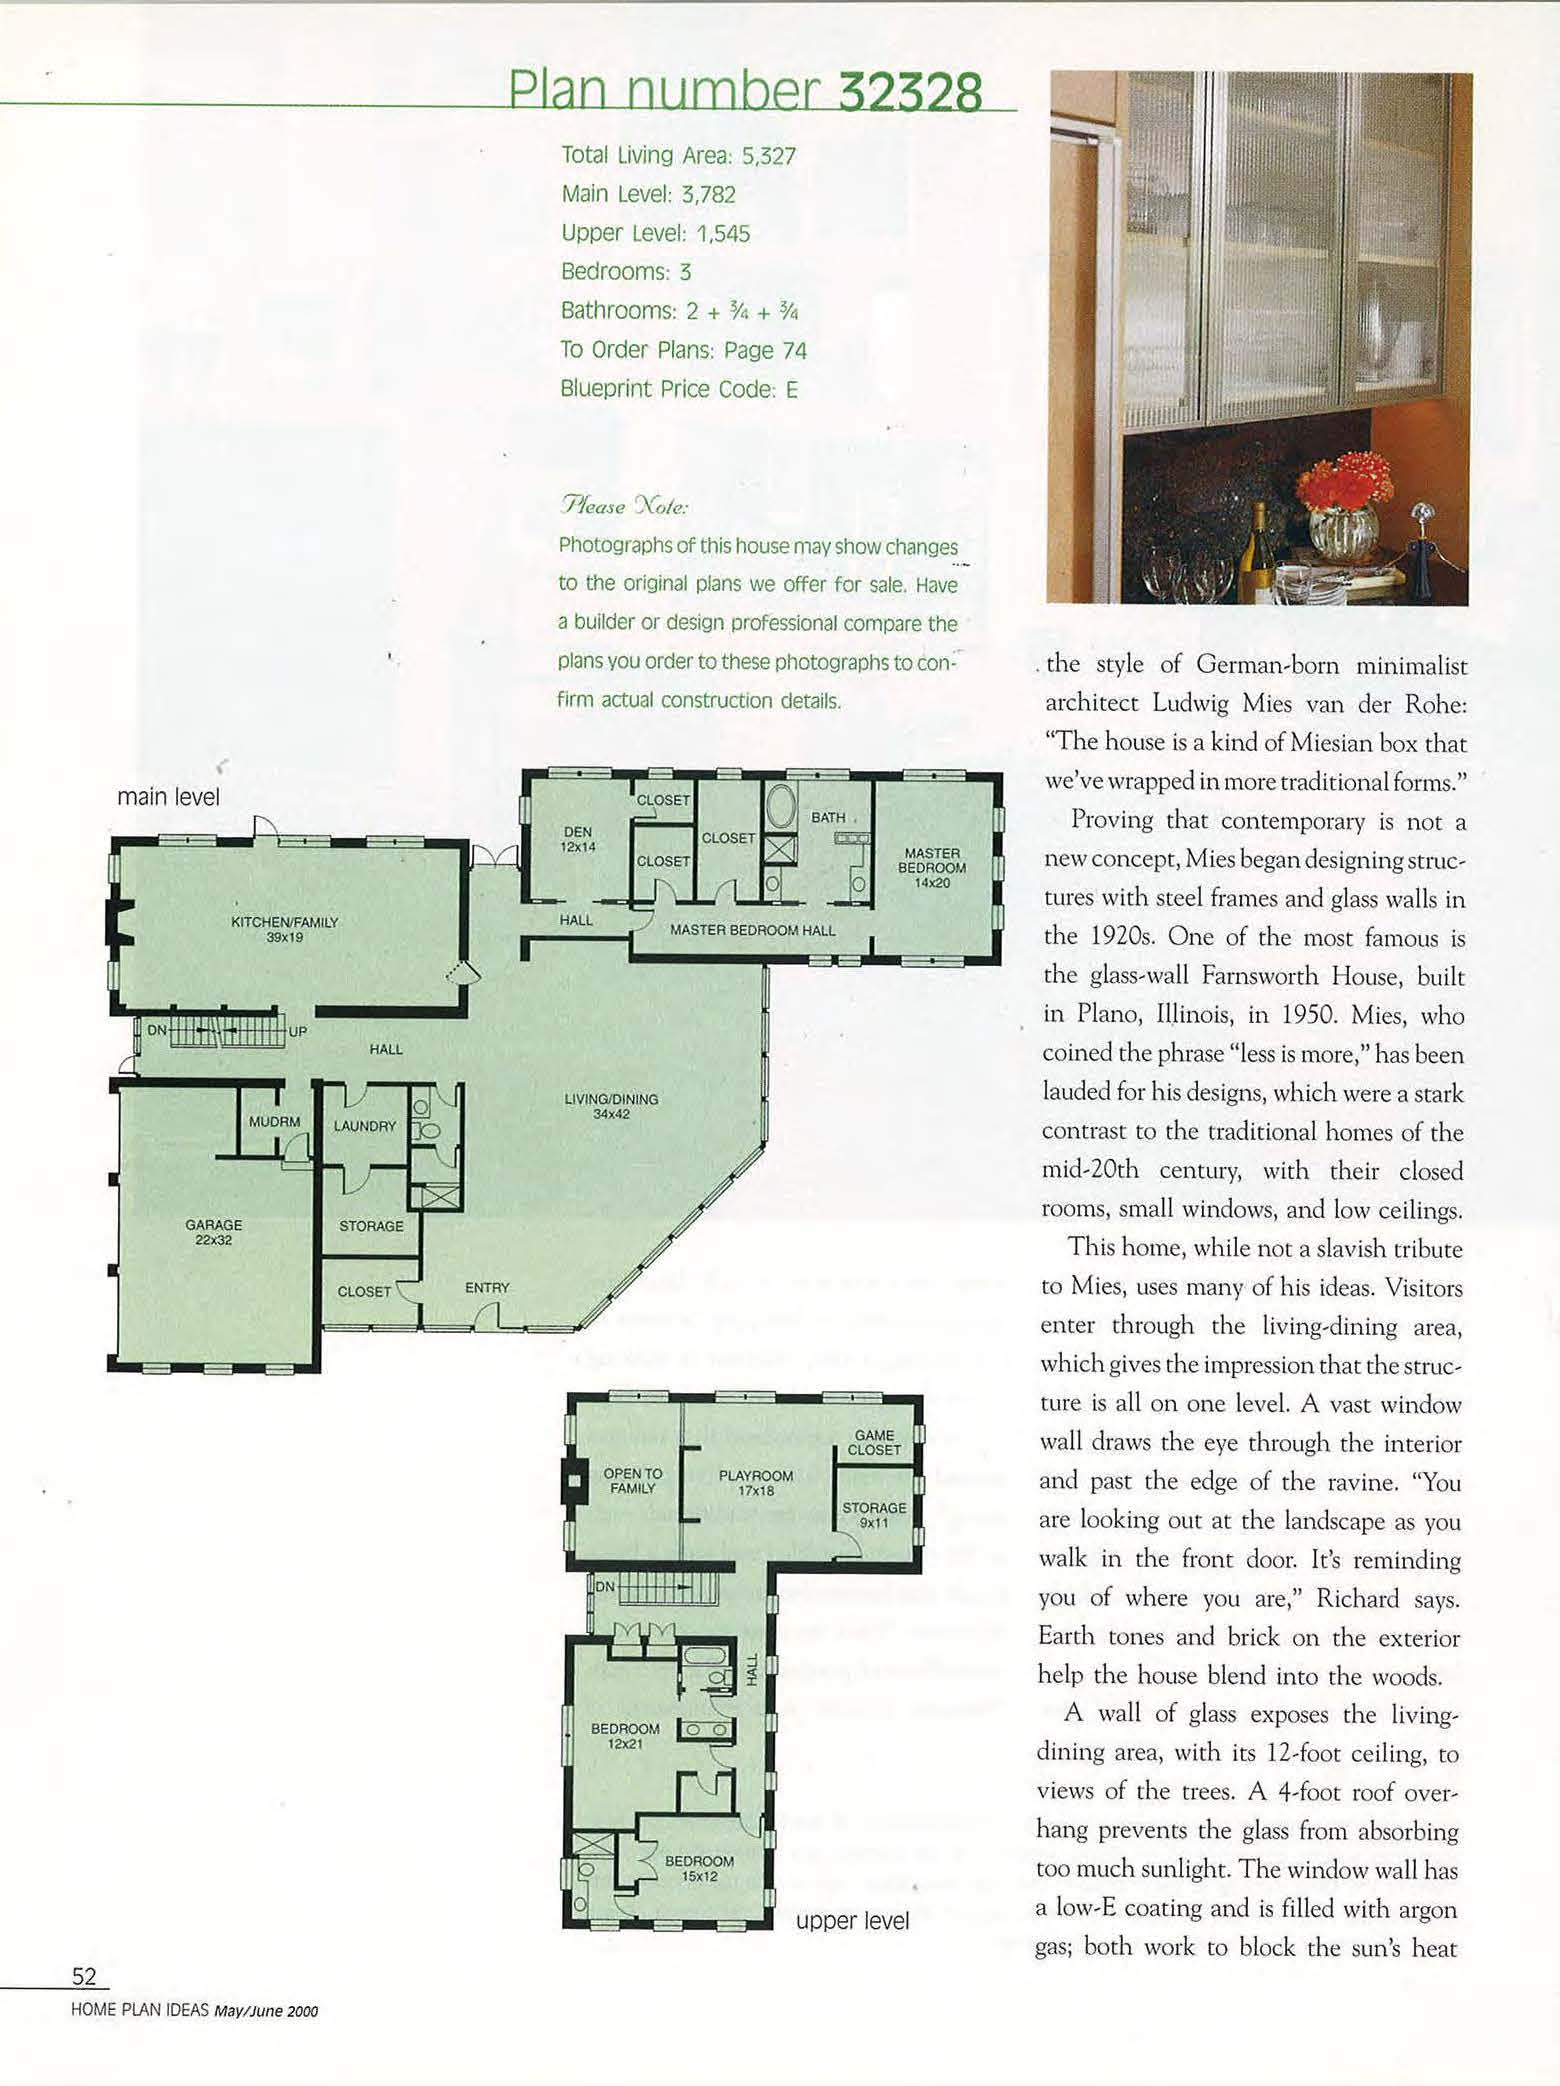 2000 Home Plan Ideas_Page_07.jpg